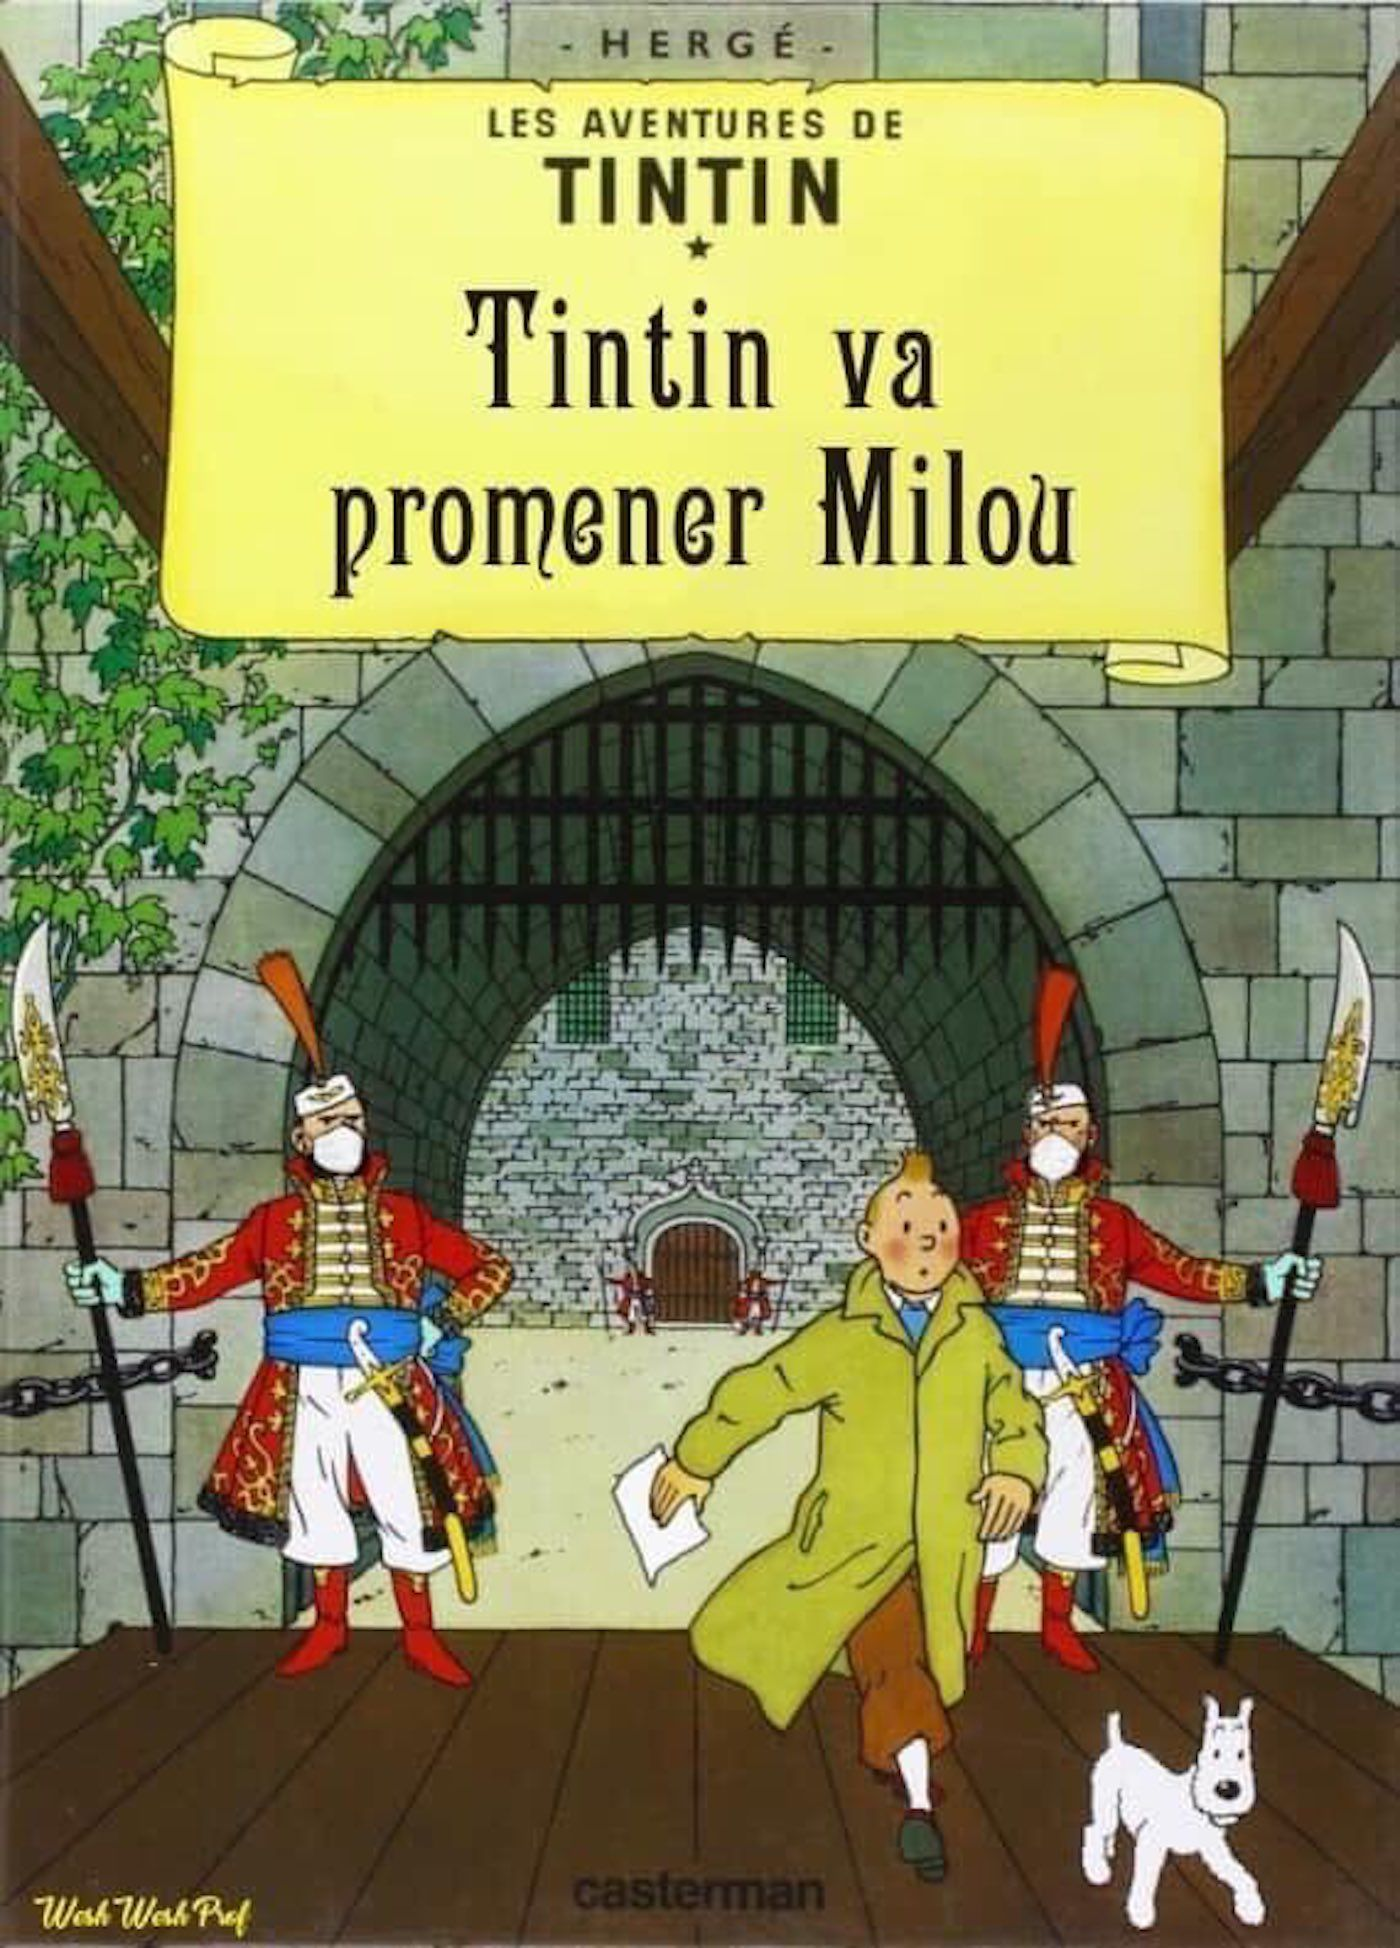 Les Aventures De Tintin Complet Streaming Vf